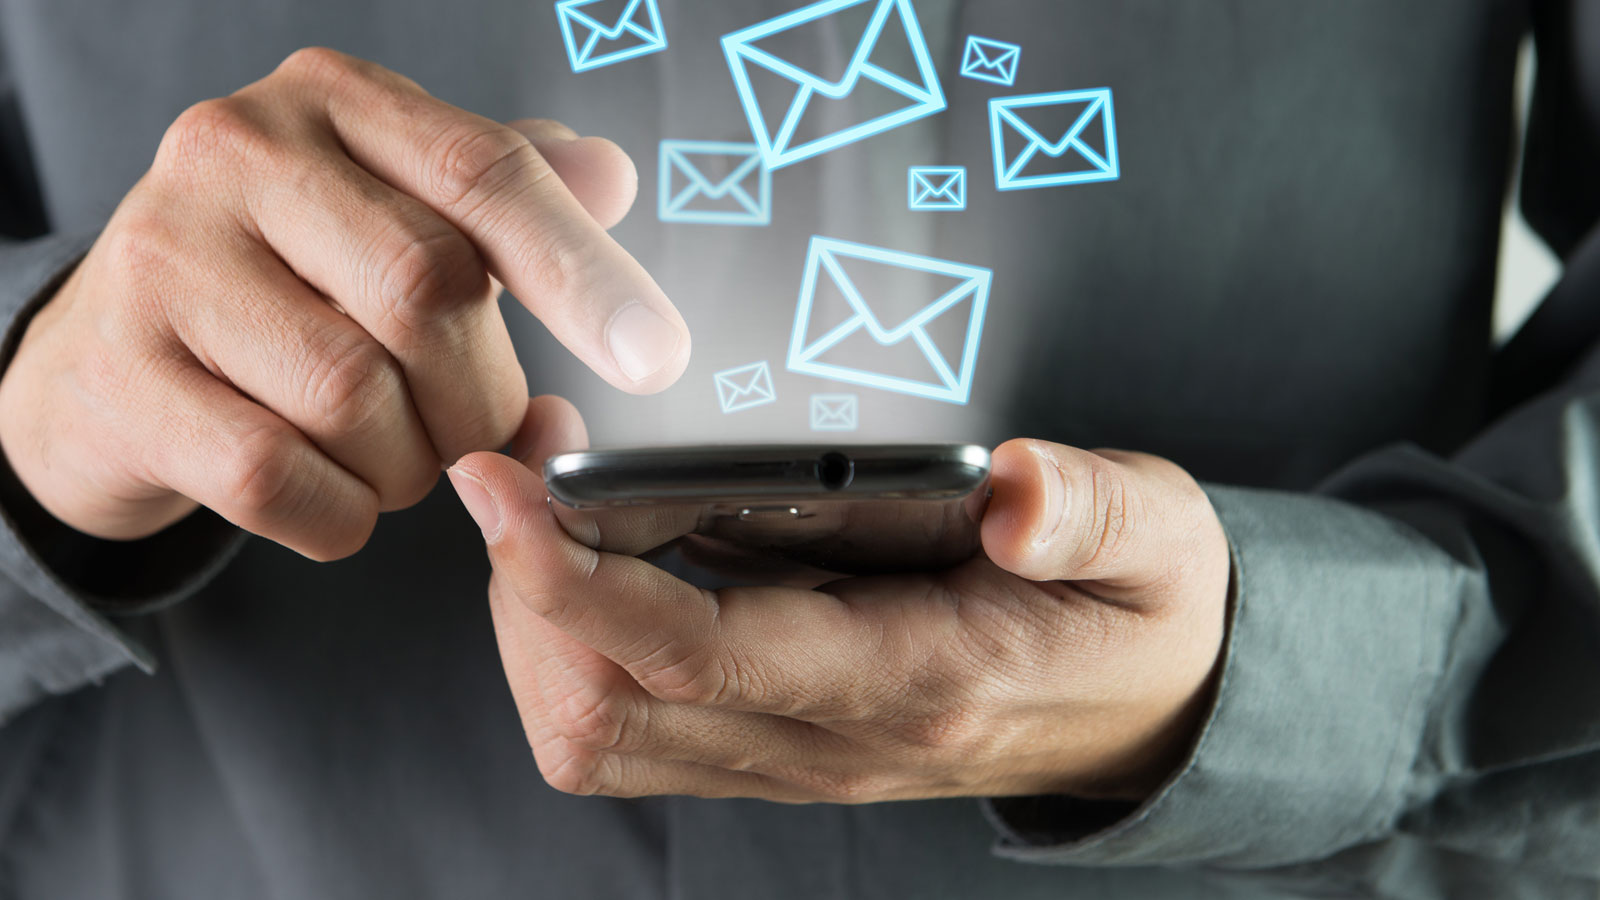 3 Tendencias que marcarán el email marketing en 2017